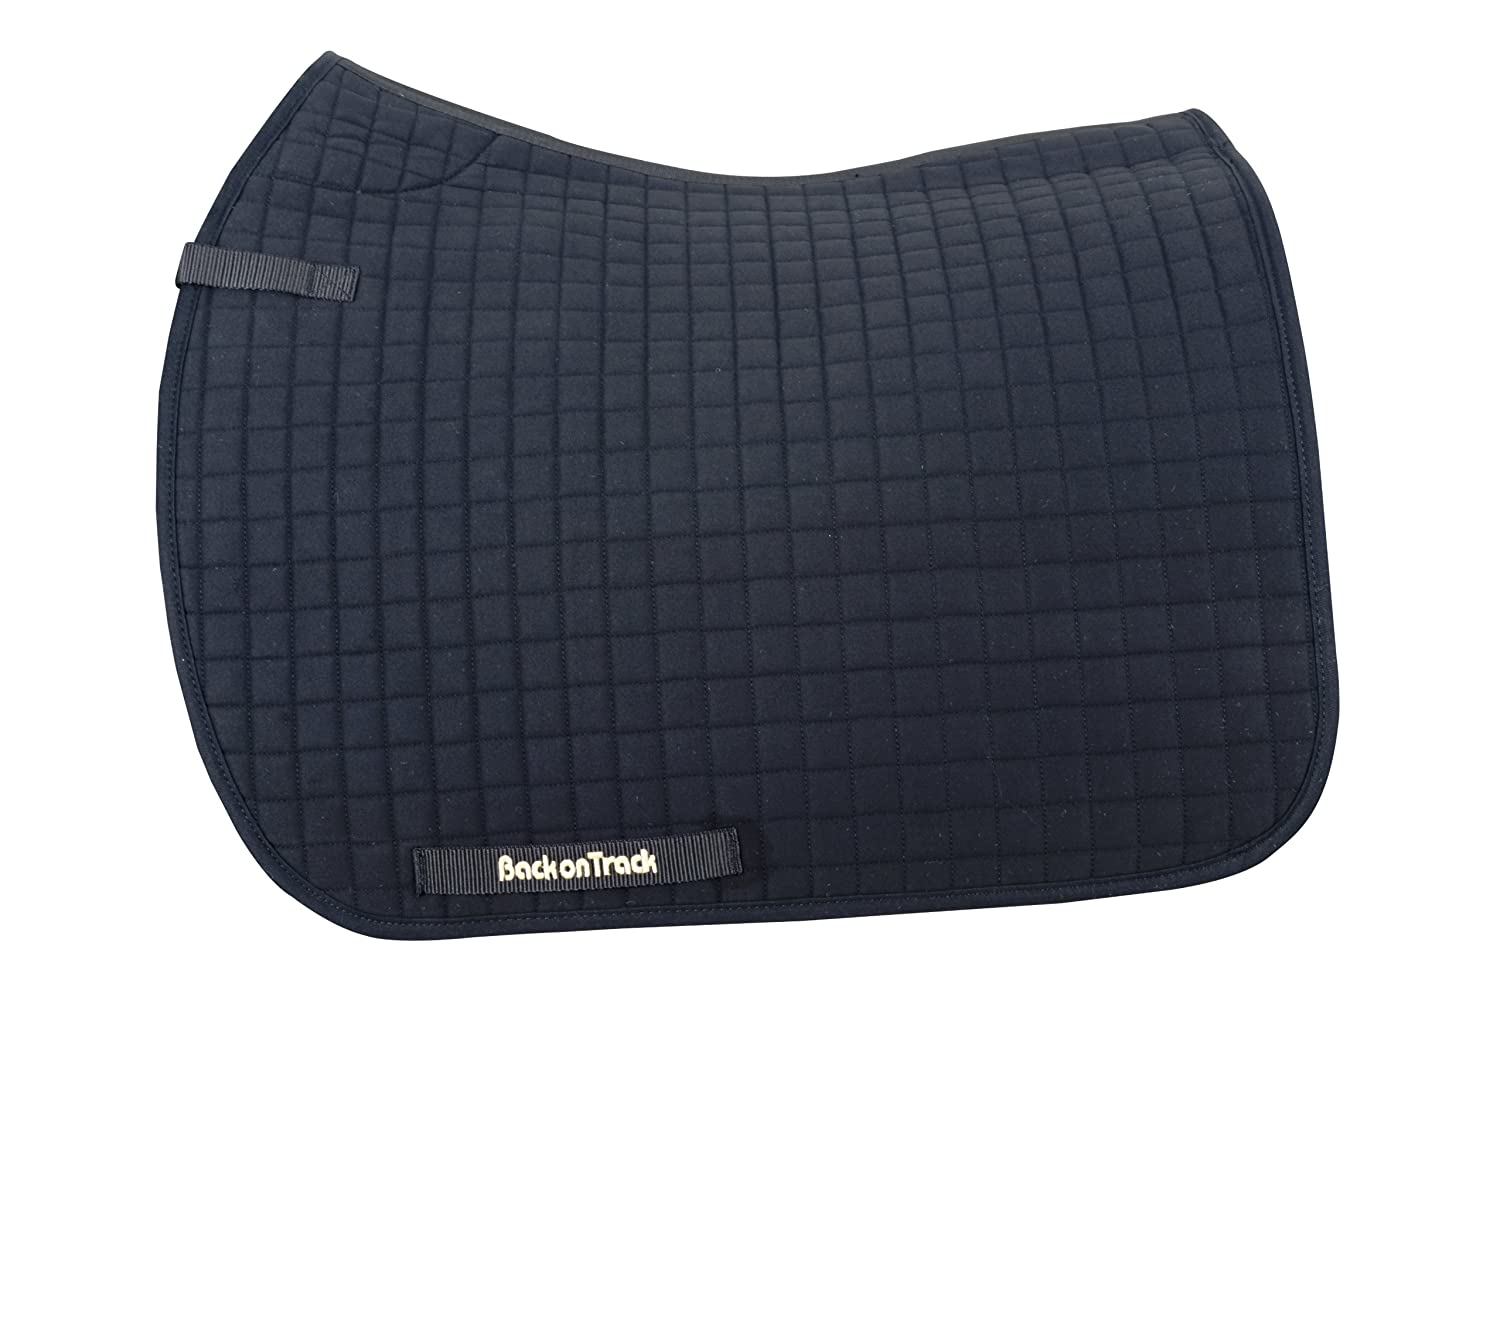 Back on Track Dressage Saddle Pad 22-Inch Spine by 21-Inch Drop White MAGMAR COLONY USA INC 21300200